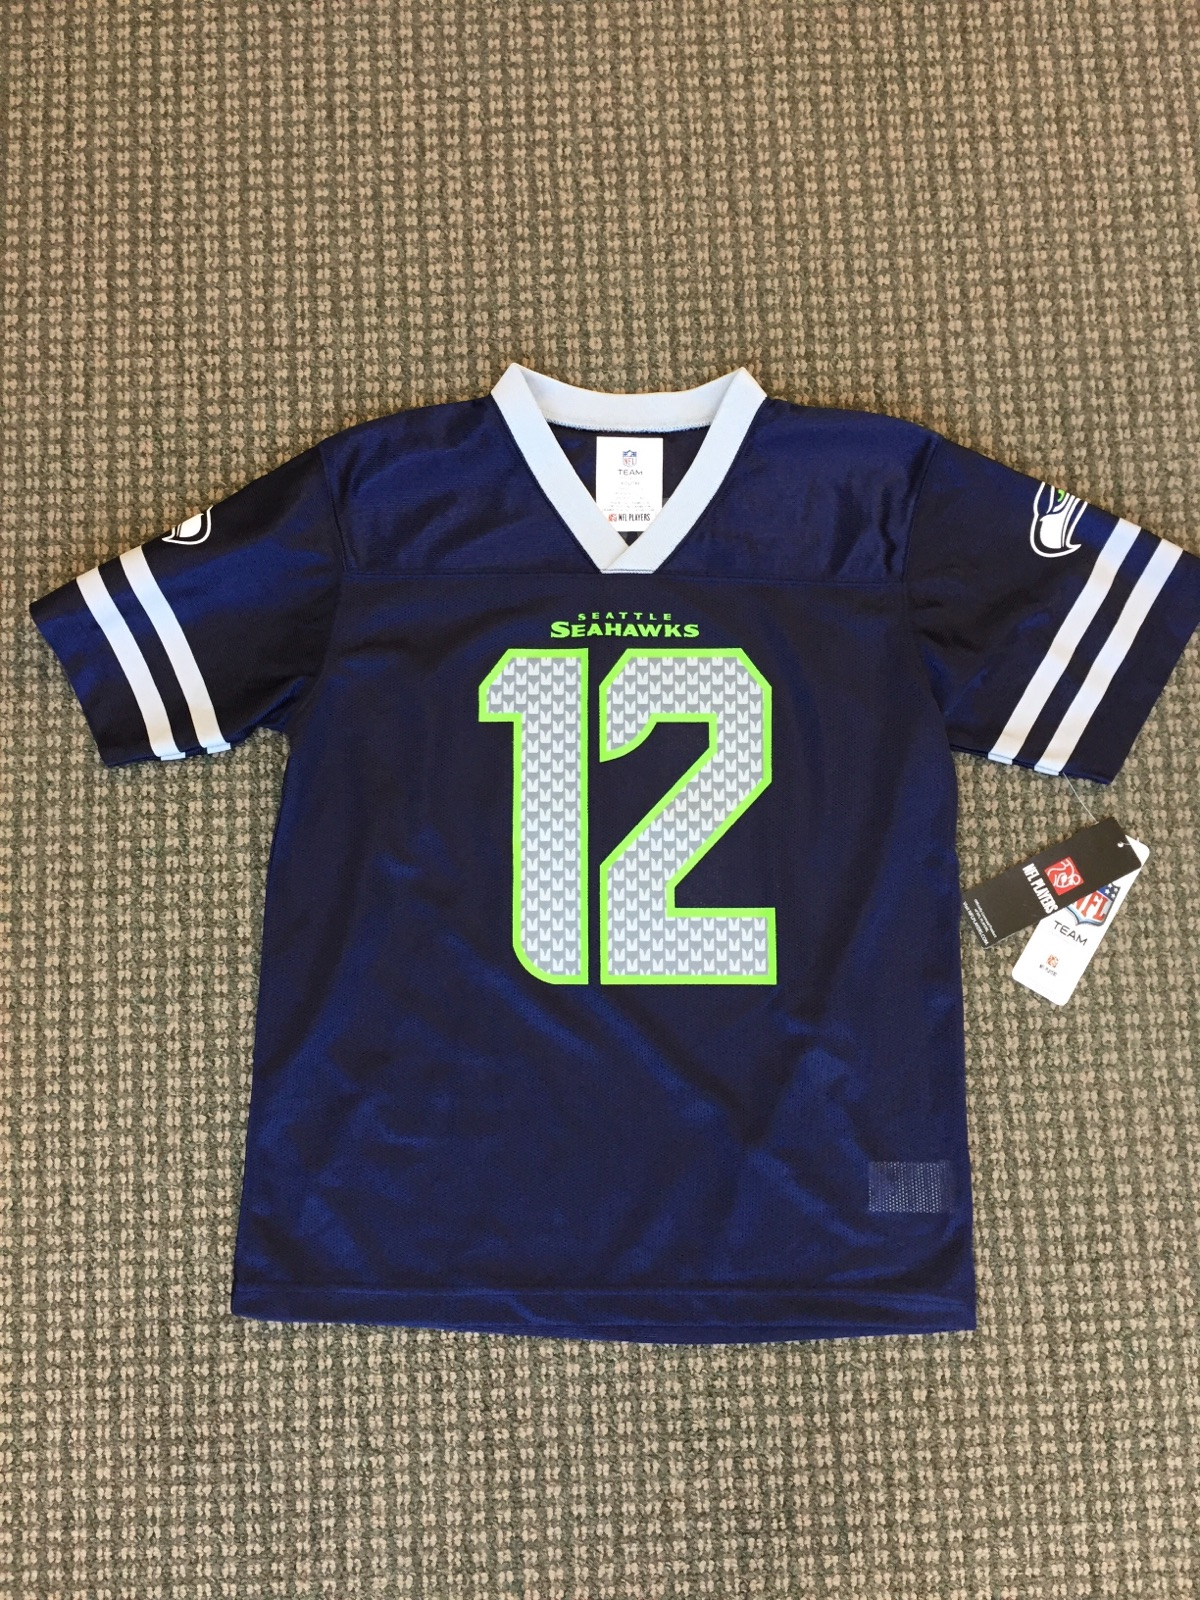 Seahawks Size 12/14 Youth Jersey